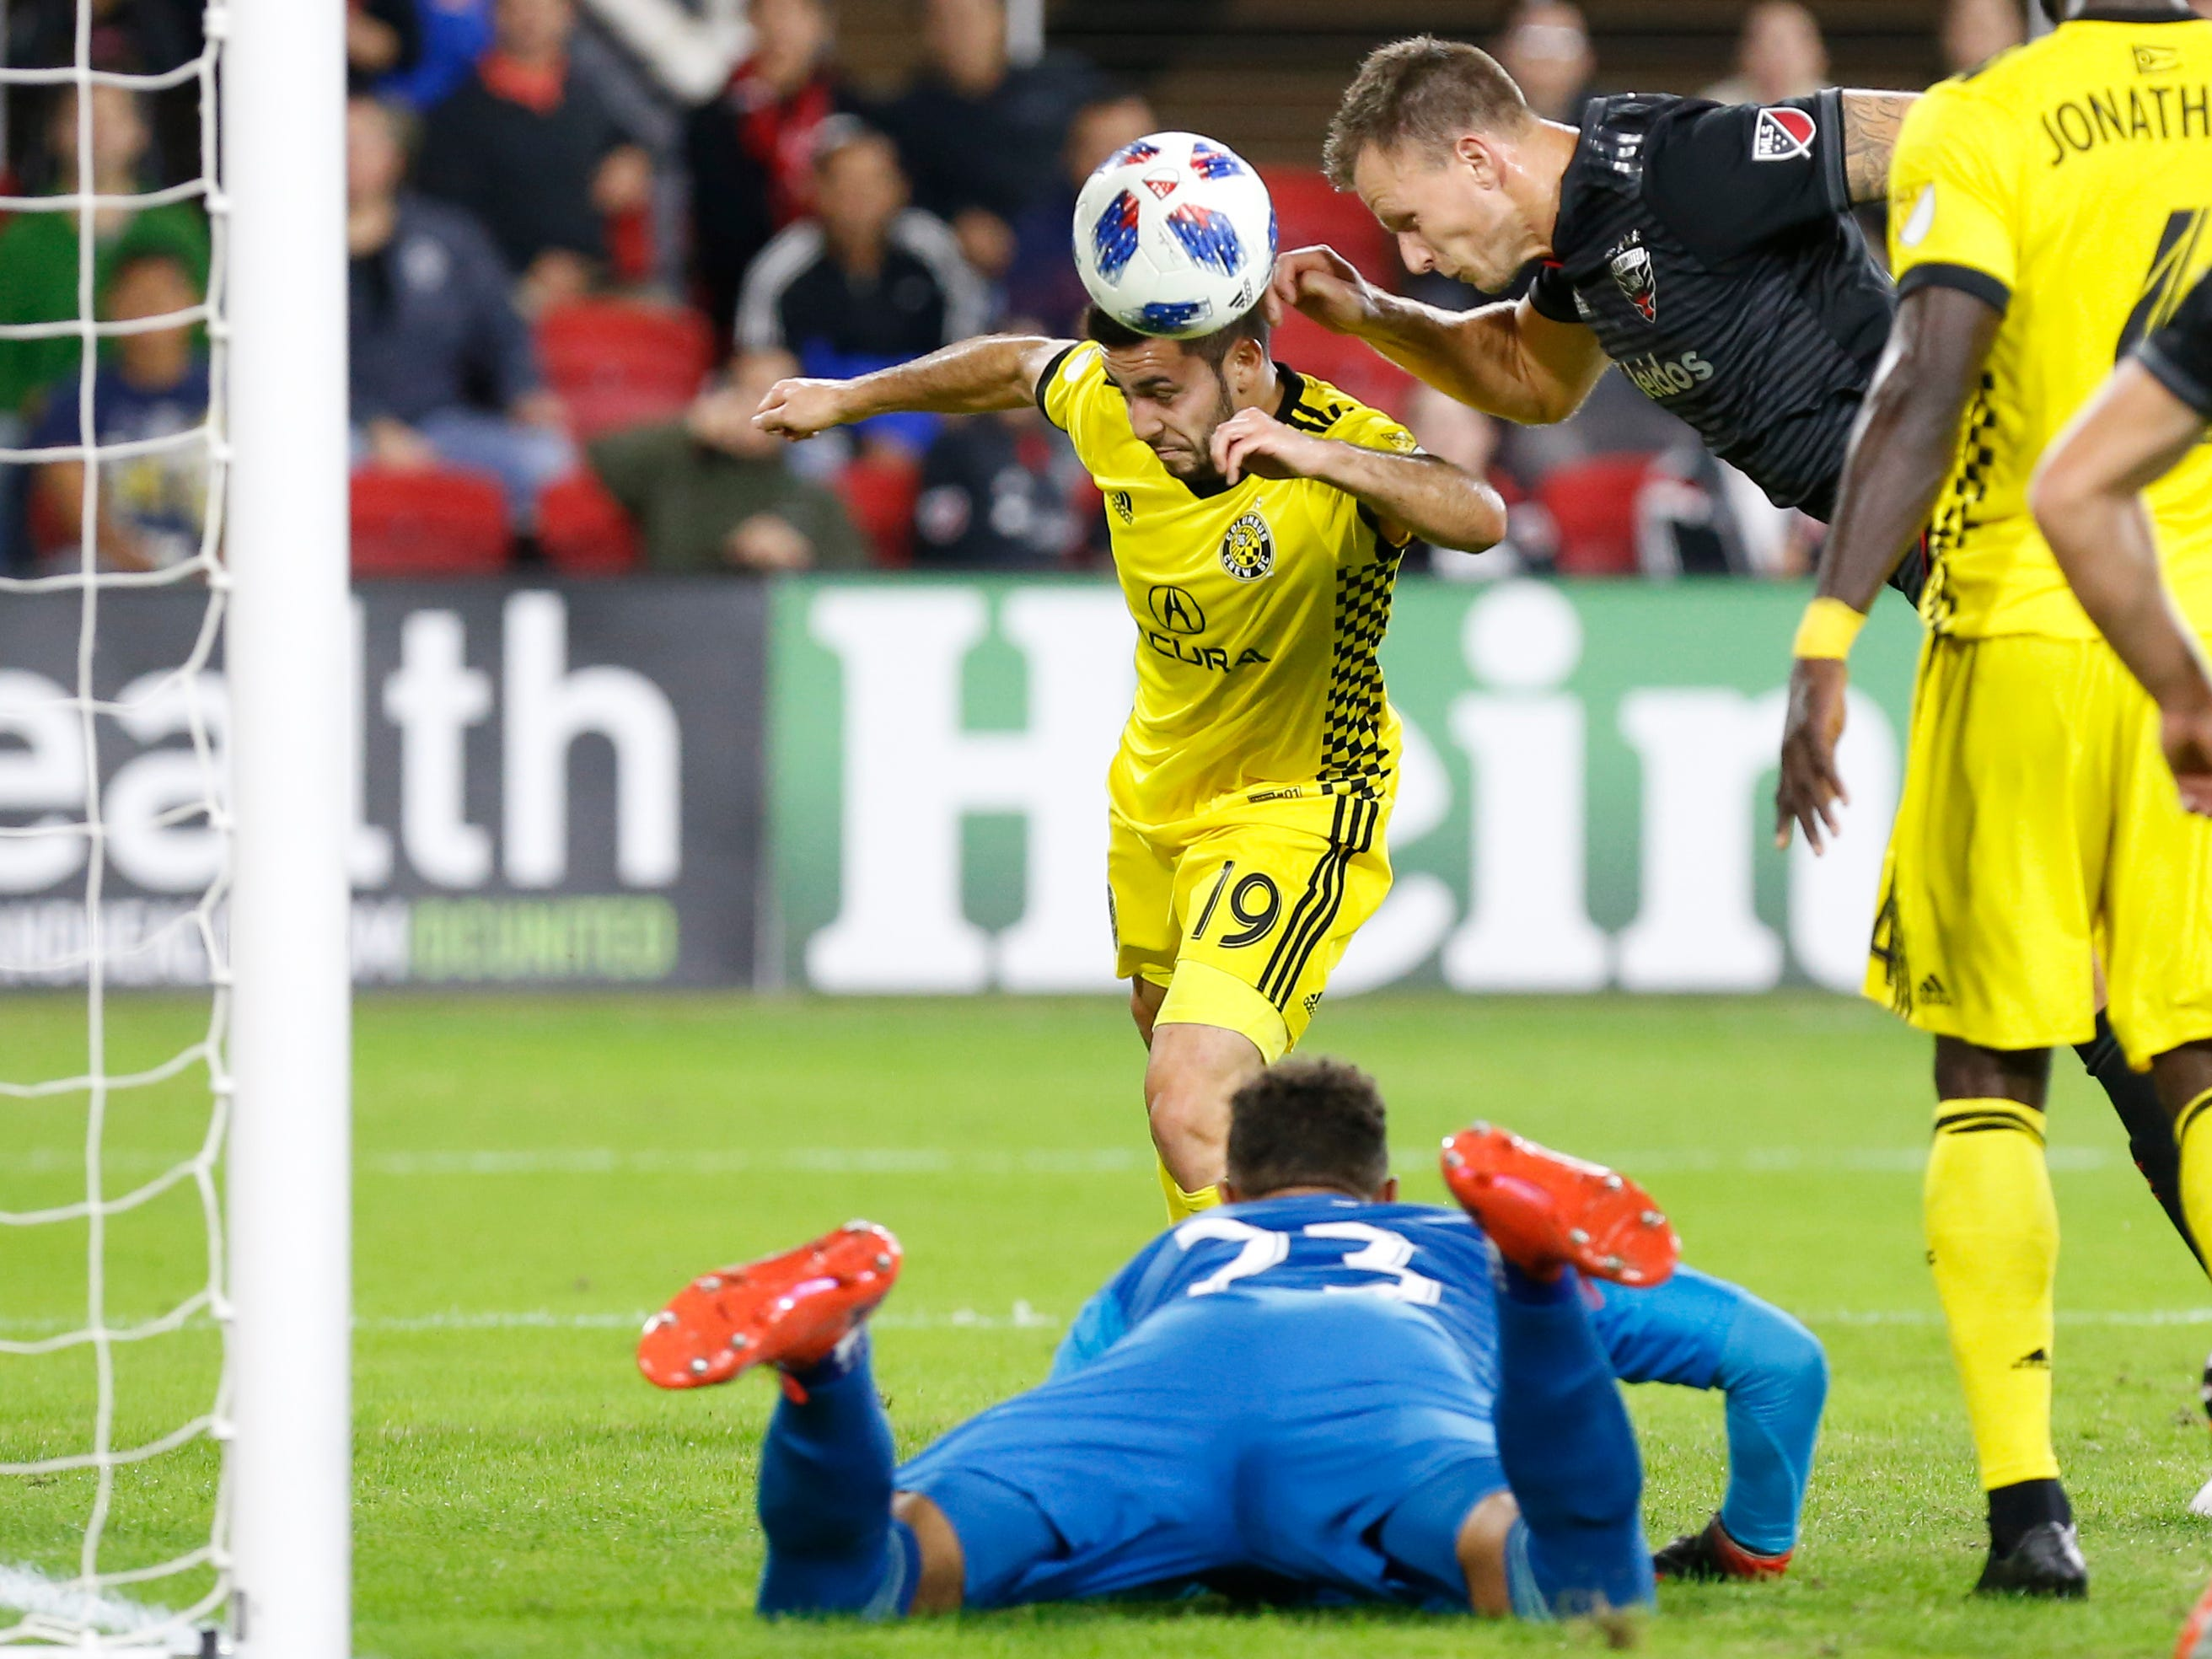 D.C. United defender Frederic Brillant scores a goal on a header against Columbus Crew SC at Audi Field.